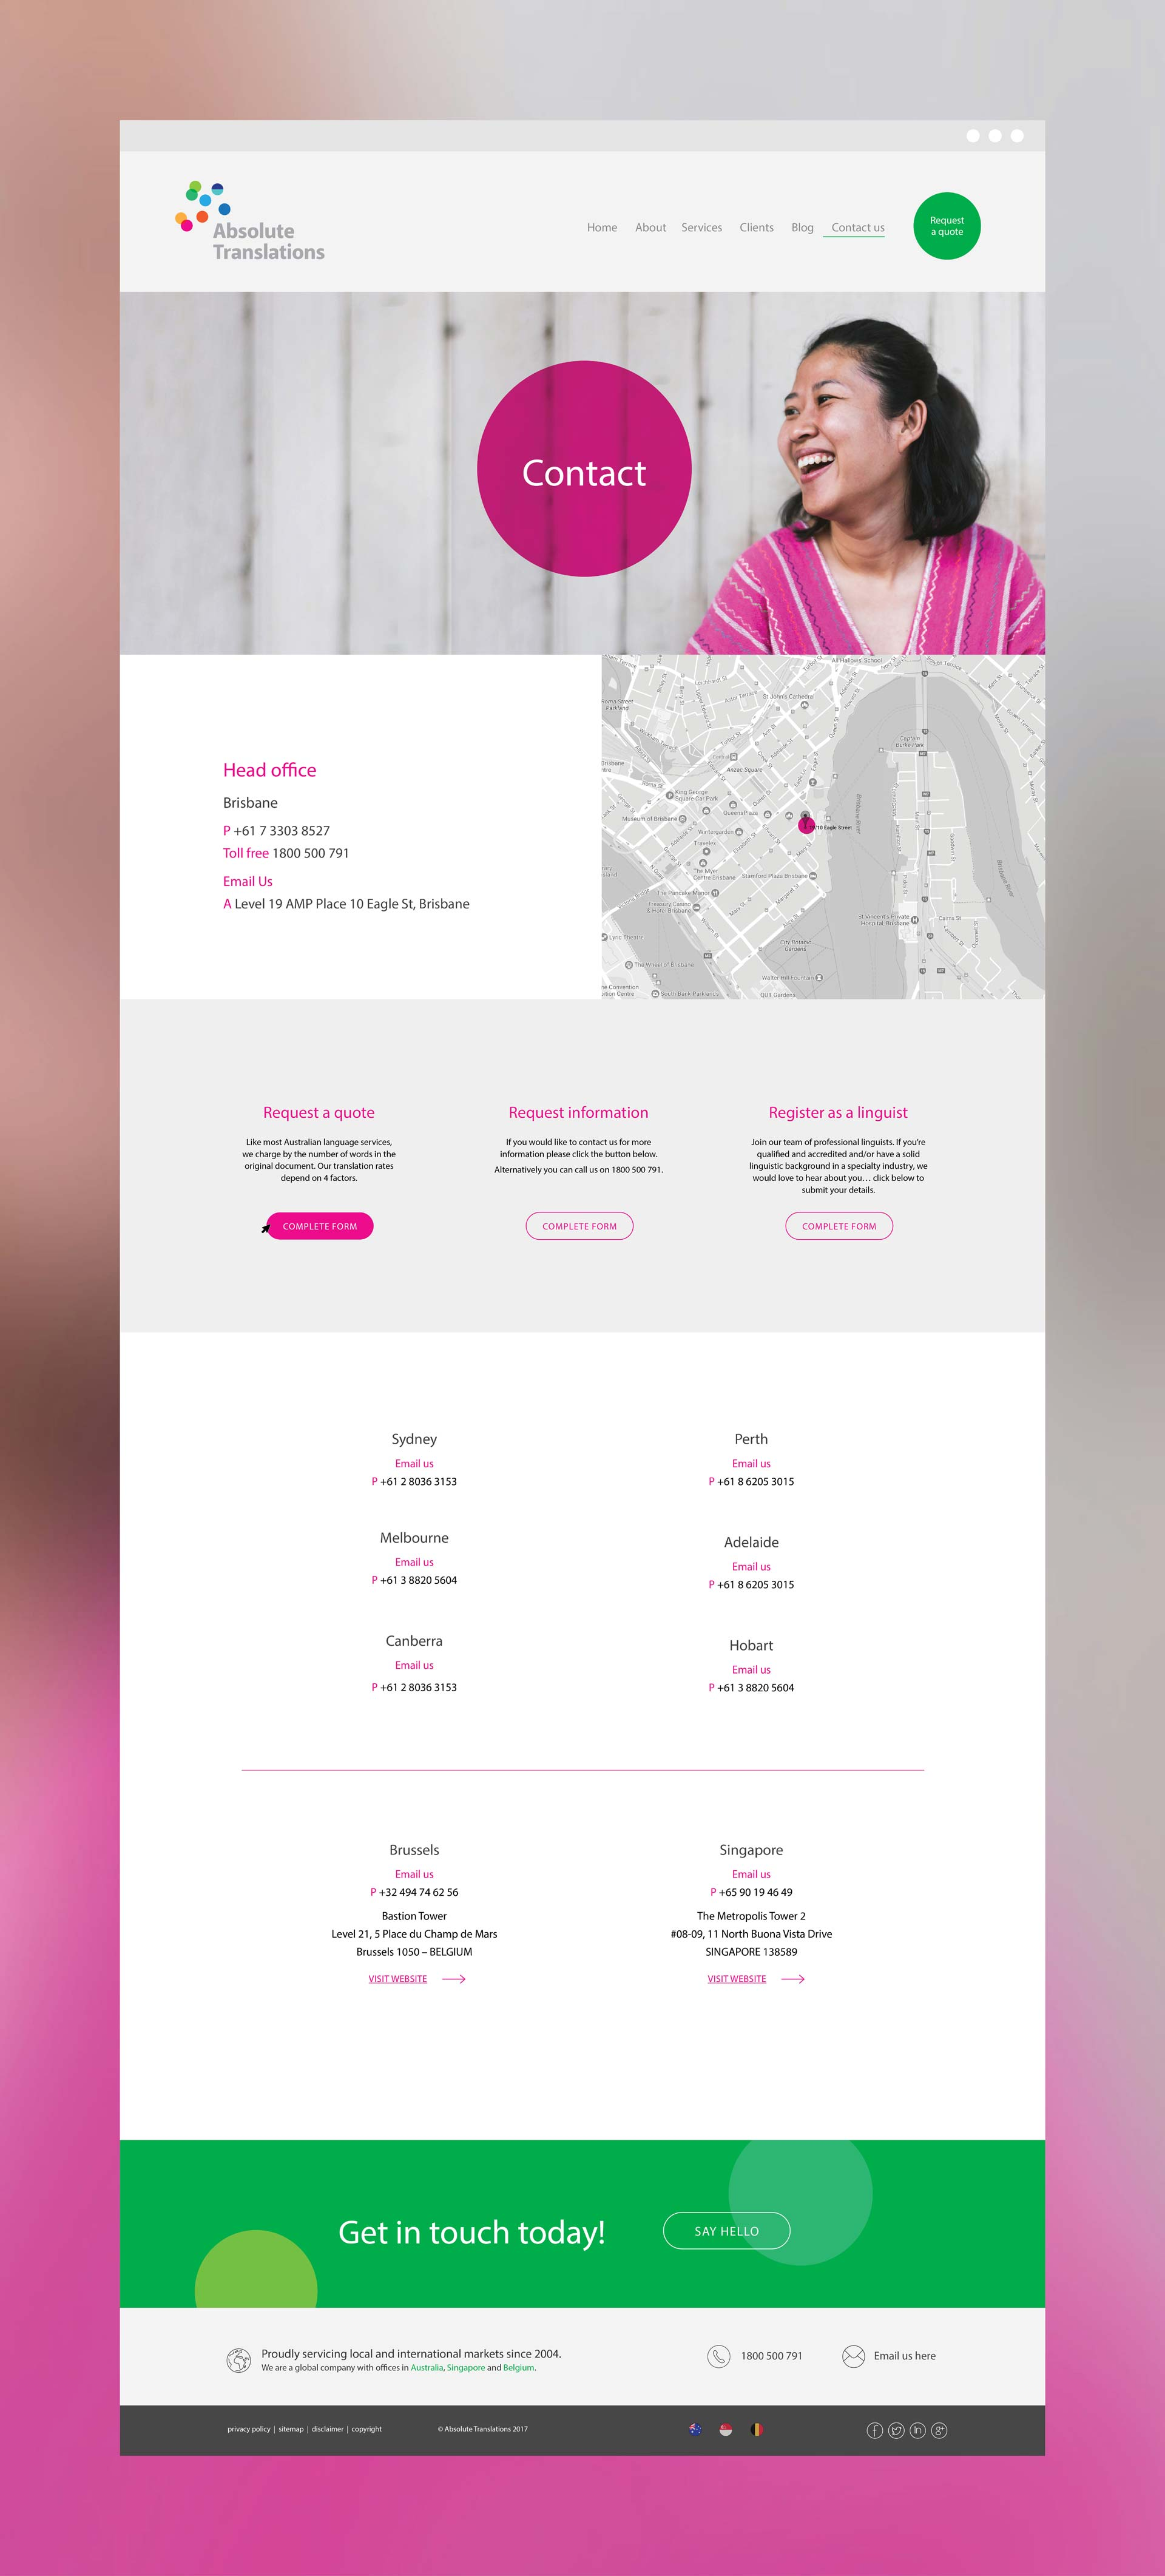 Absolute Tranlsations Logo Design Website Interface